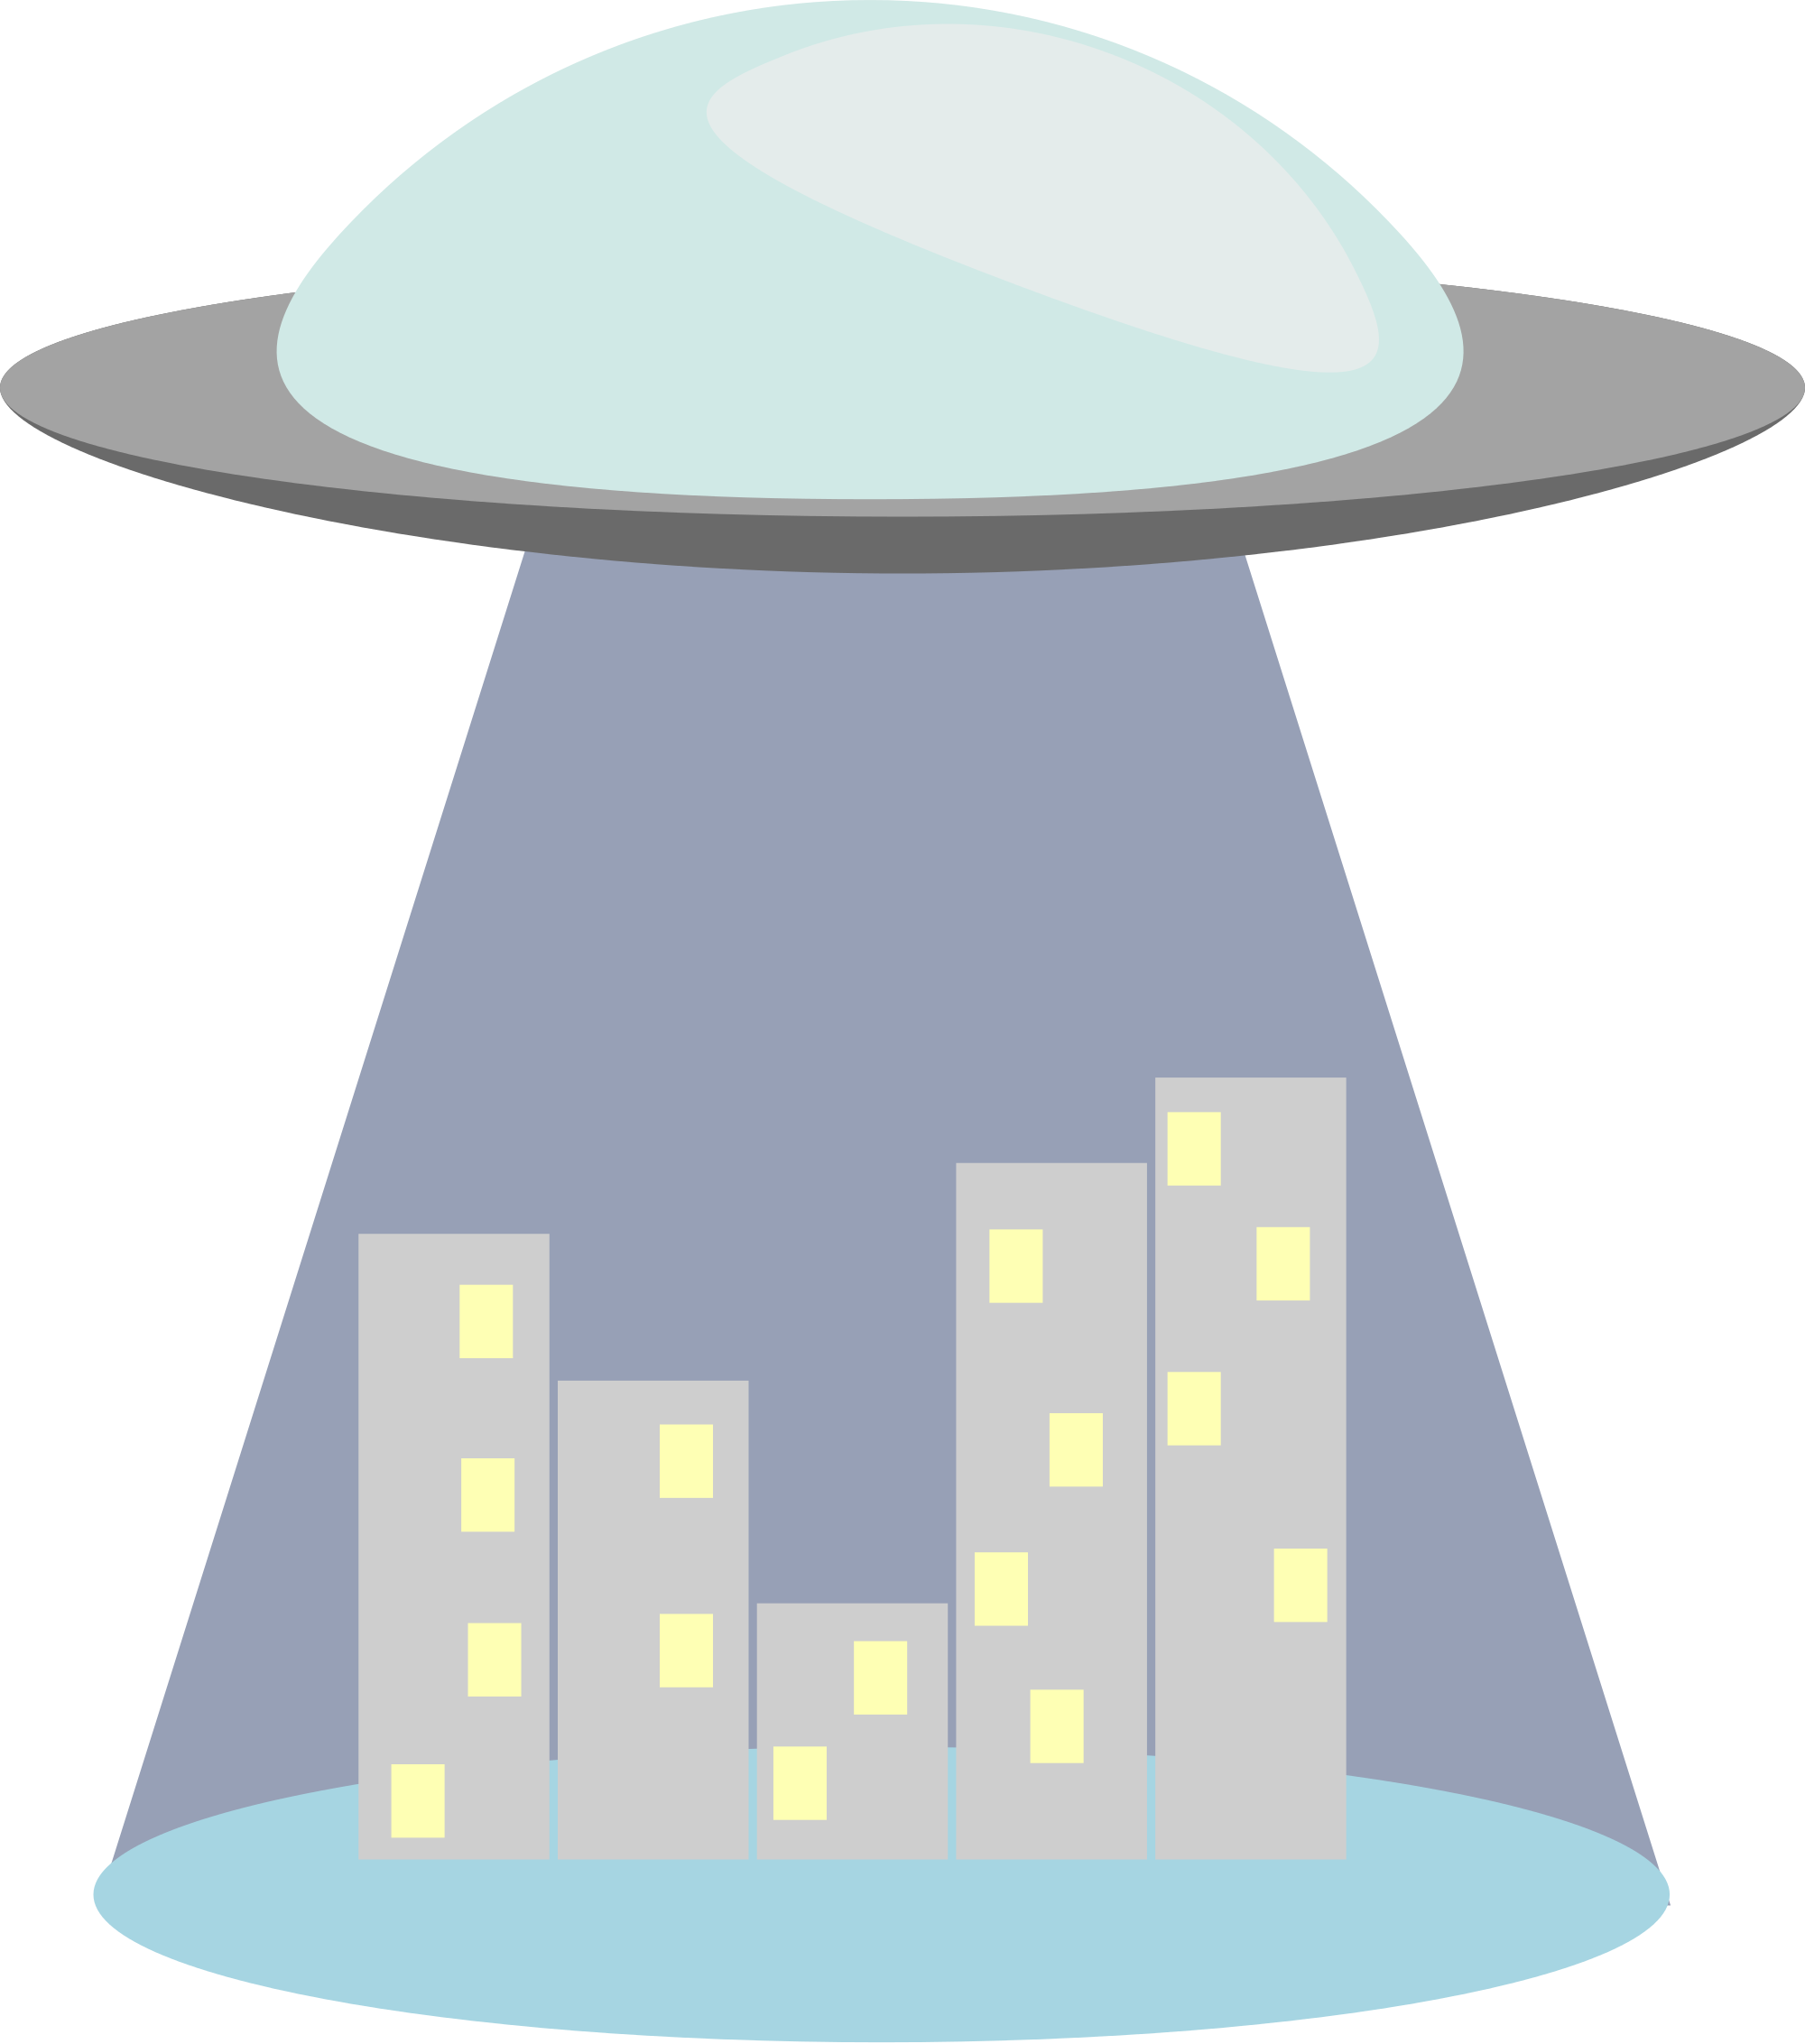 Spaceship clipart ufo abduction. File svg wikimedia commons